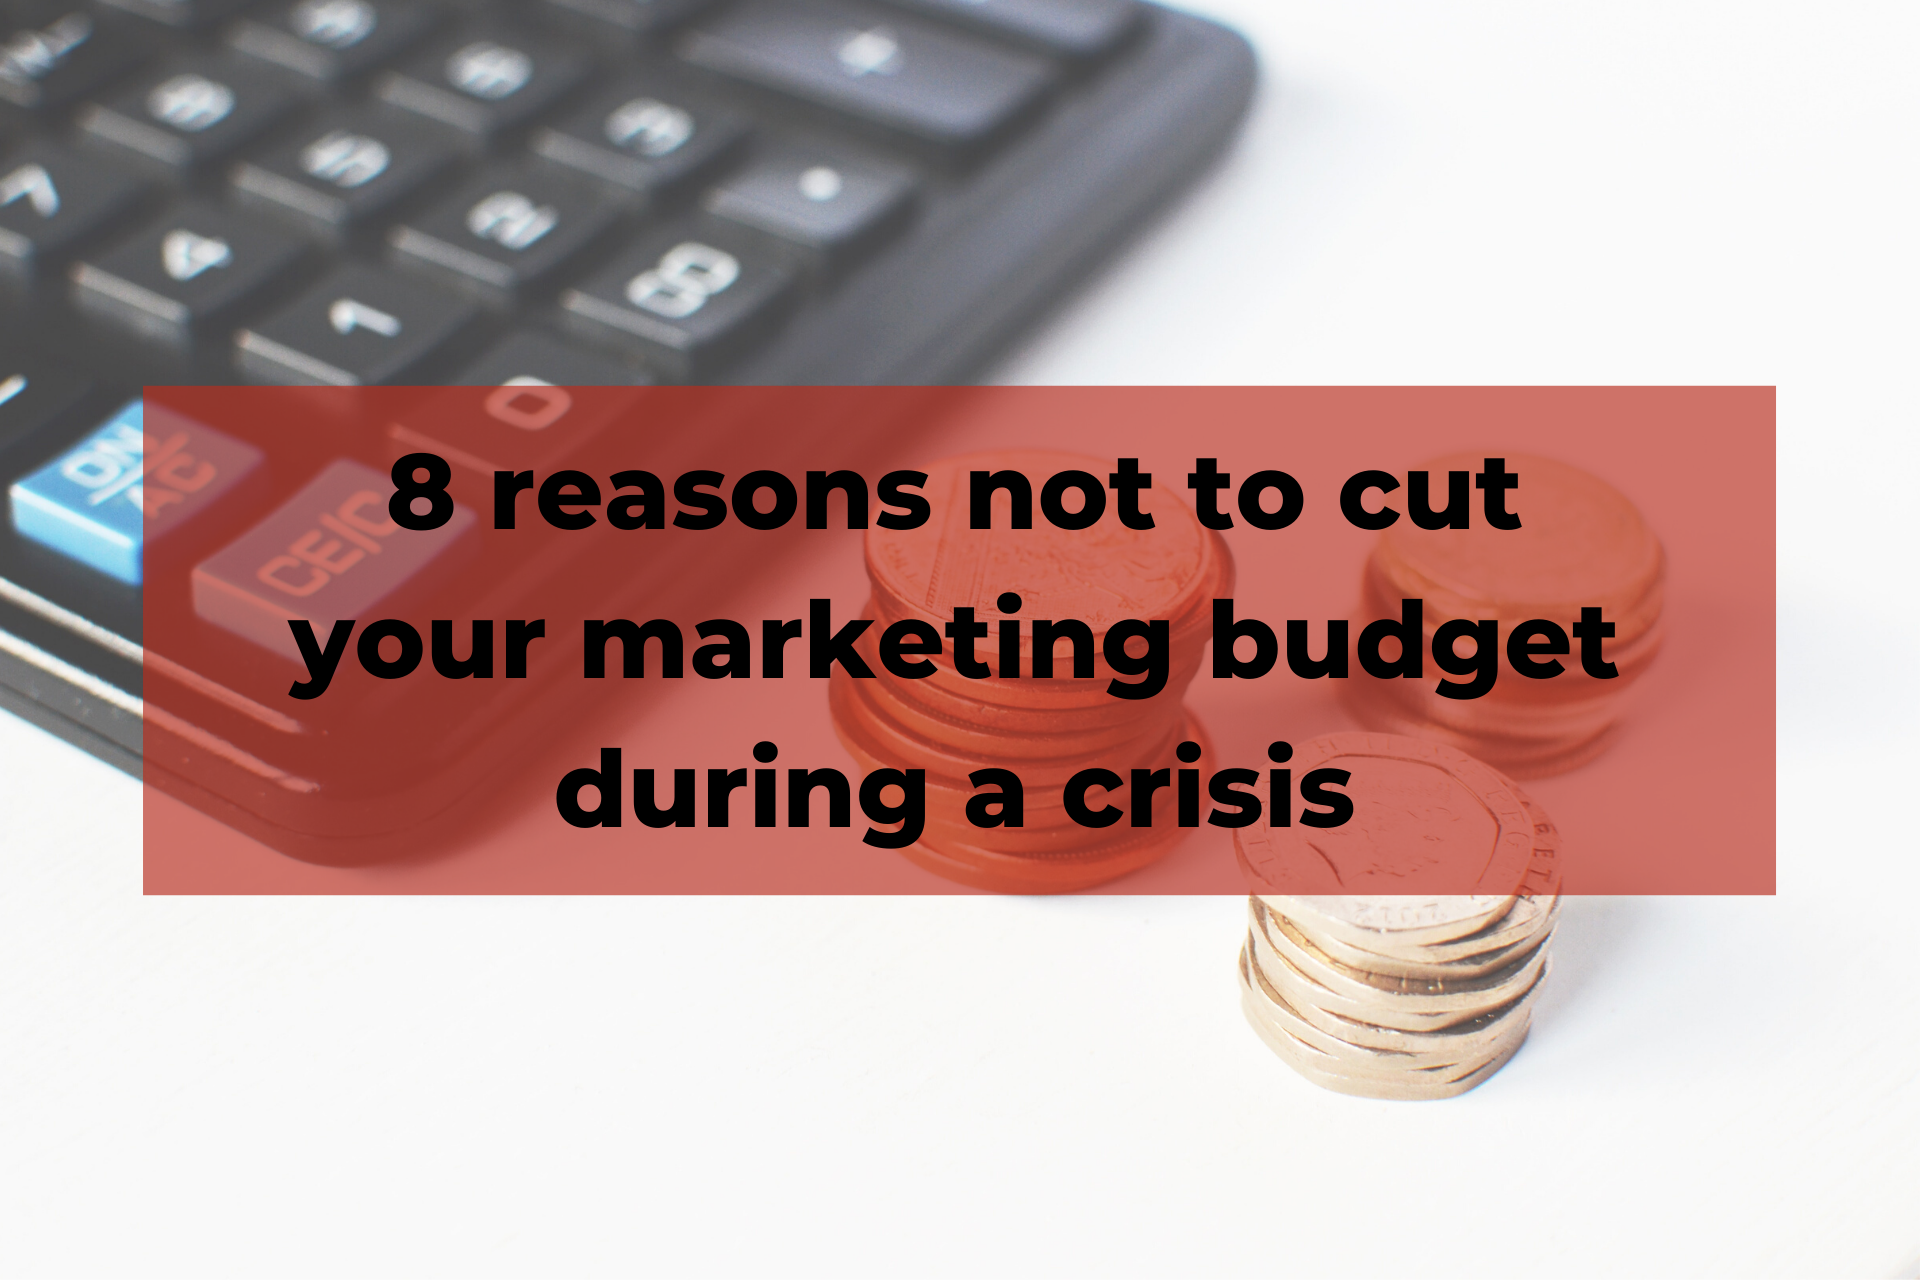 Reasons not to cut marketing